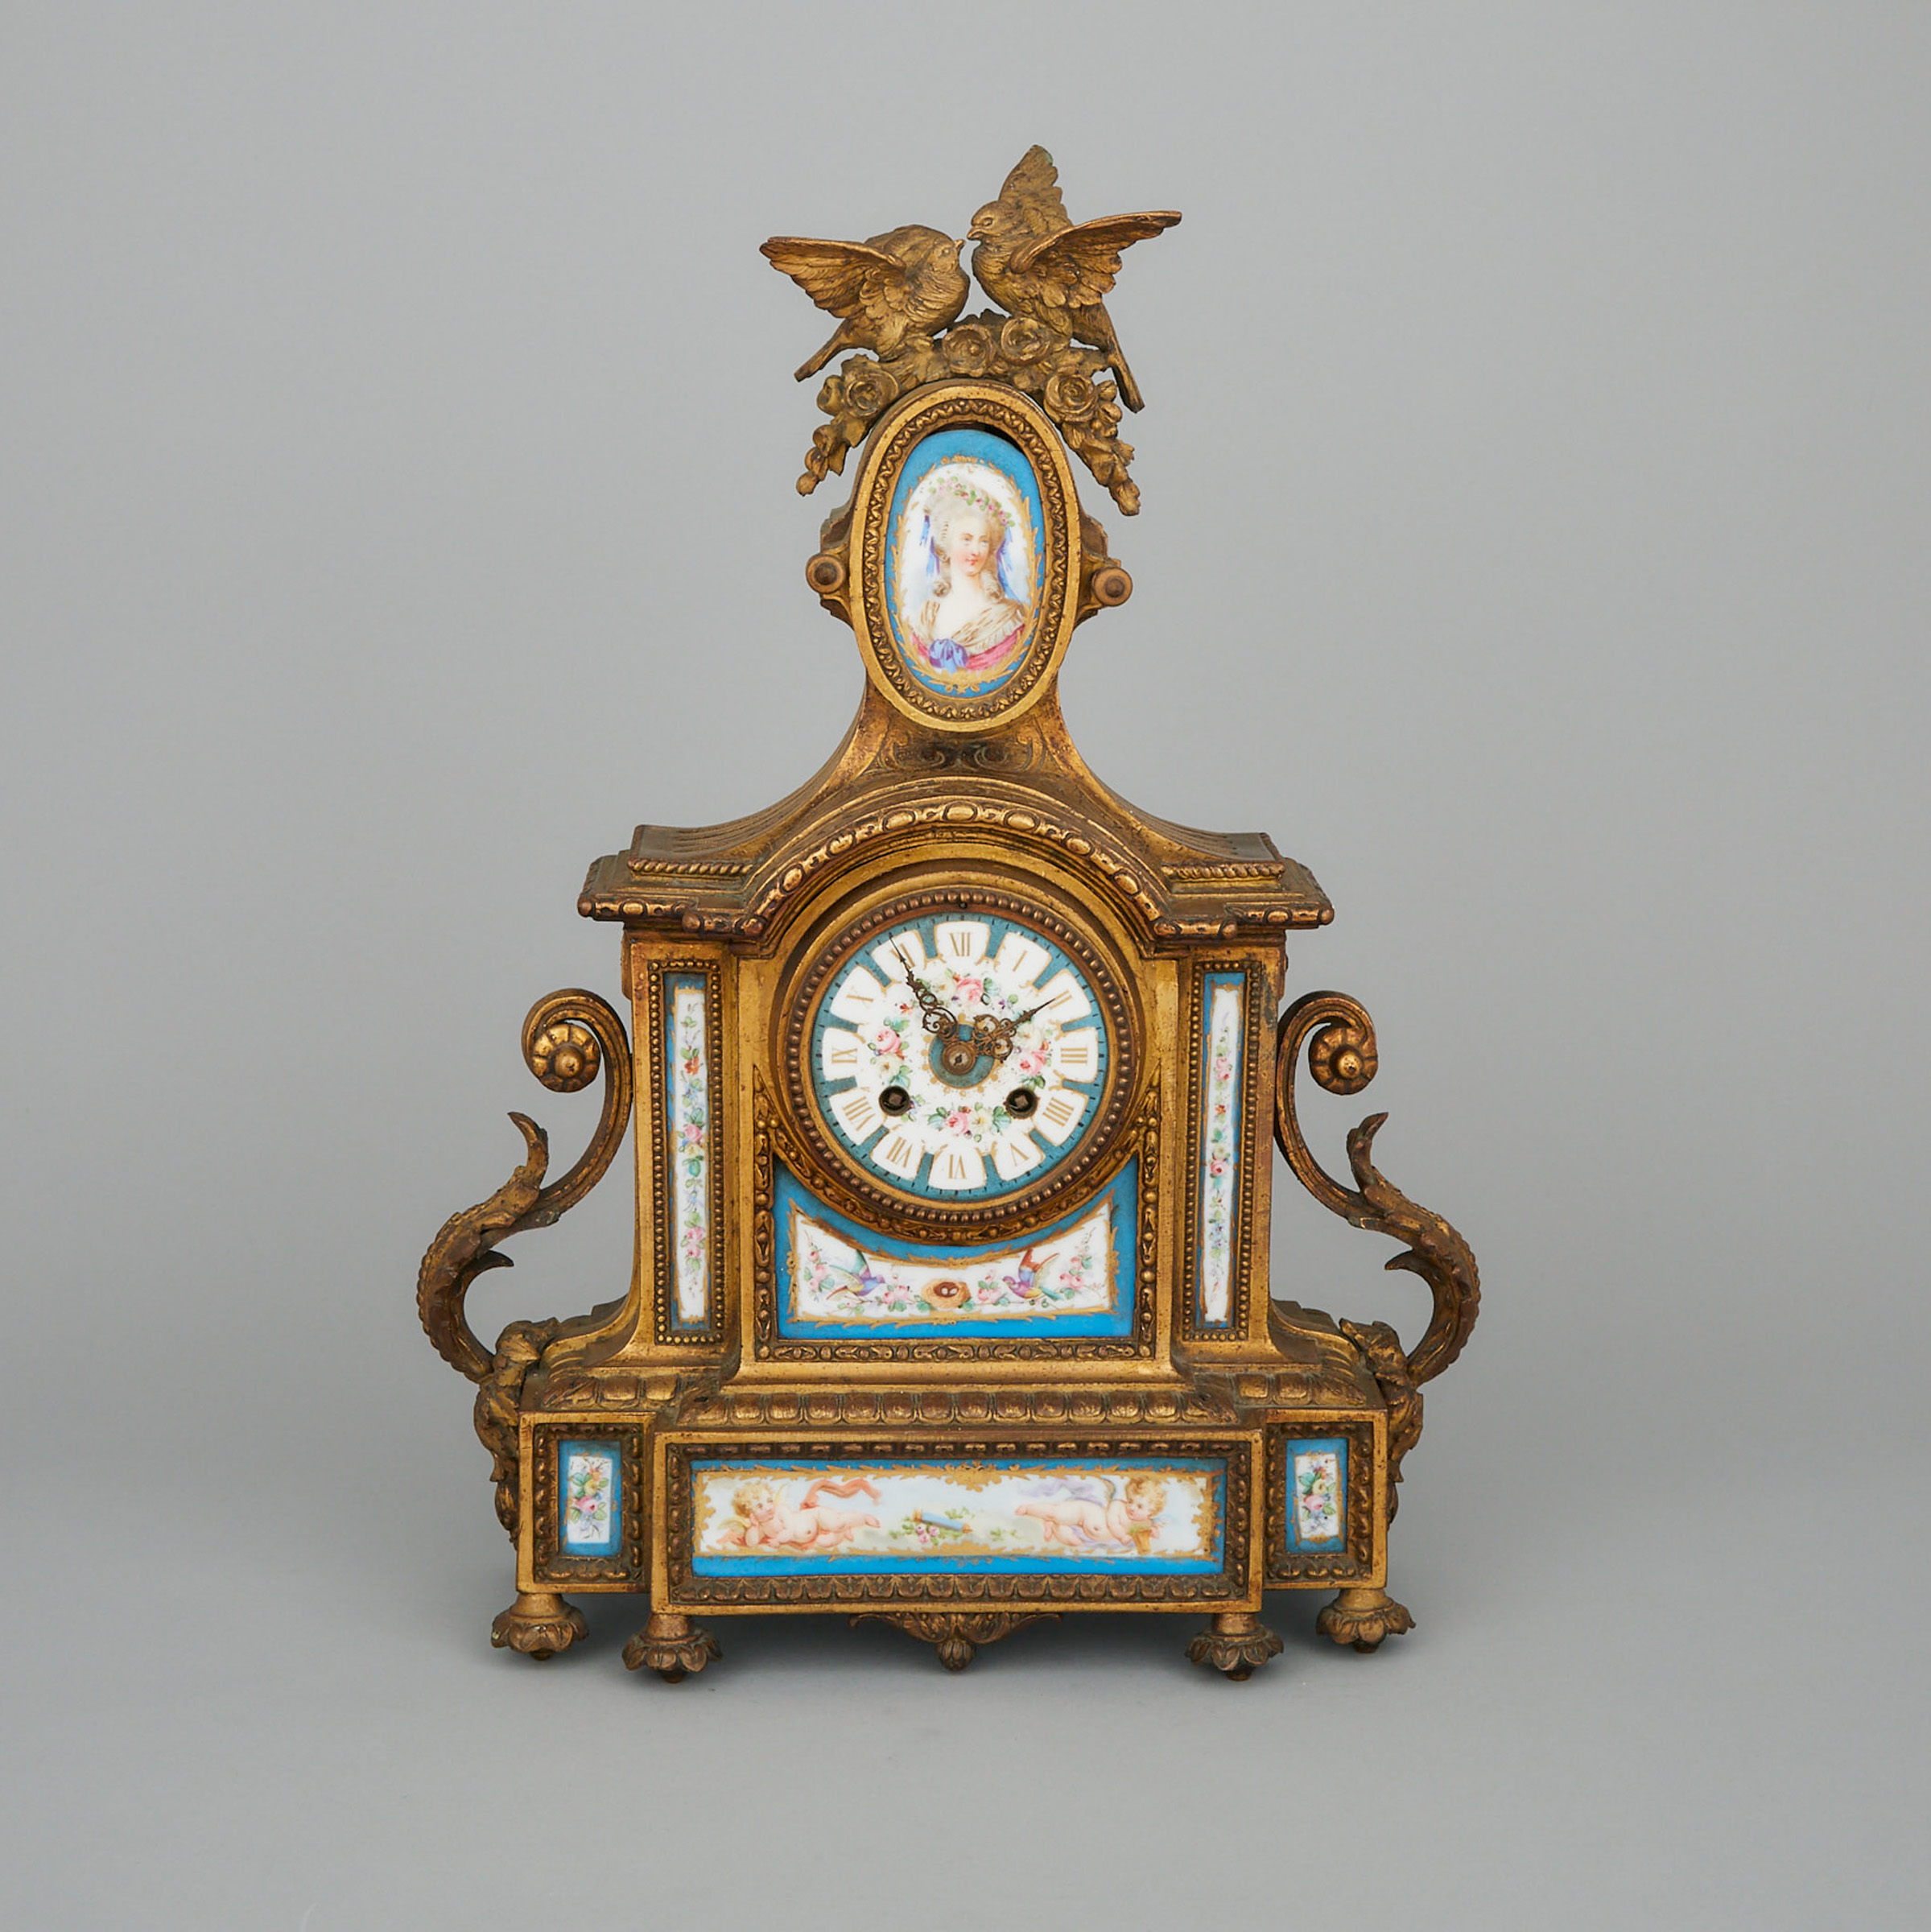 Louis XVI Style Sevres Style Porcelain Mounted Gilt White Metal Mantel Clock, 19th century